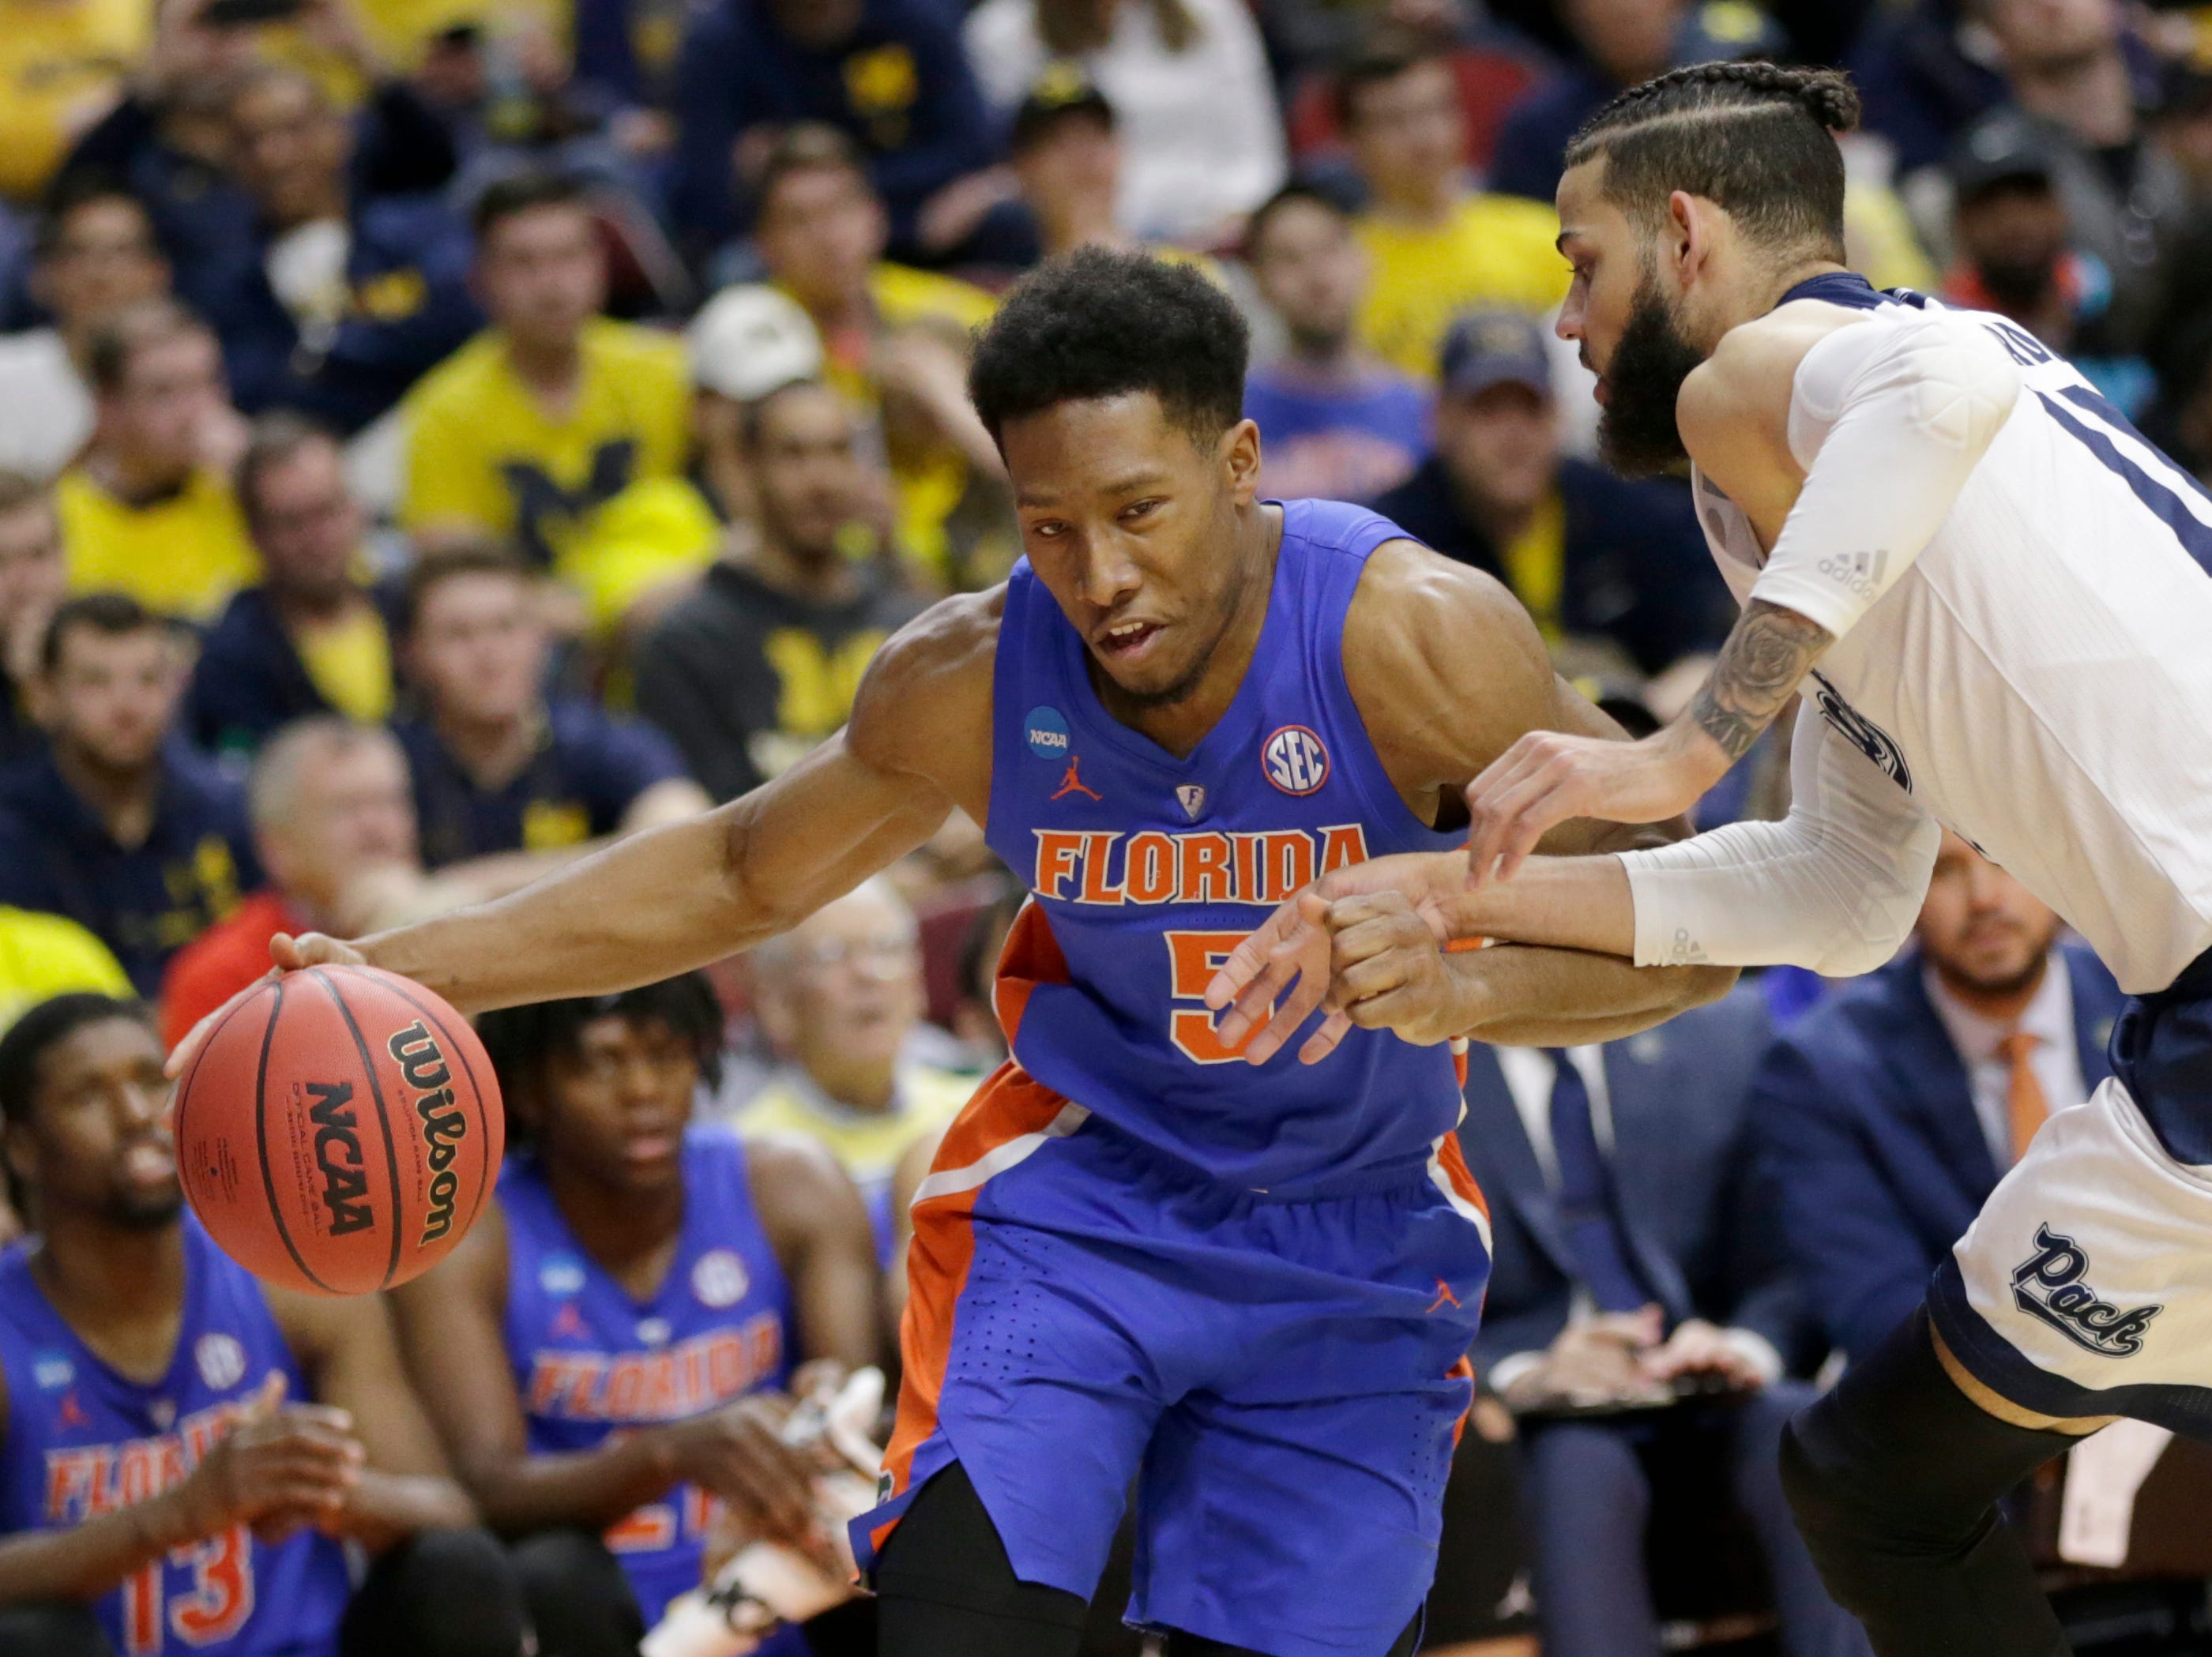 Florida's KeVaughn Allen (5) drives around Nevada's Cody Martin (11) during the second half of a first round men's college basketball game in the NCAA Tournament, in Des Moines, Iowa, Thursday, March 21, 2019. (AP Photo/Nati Harnik)